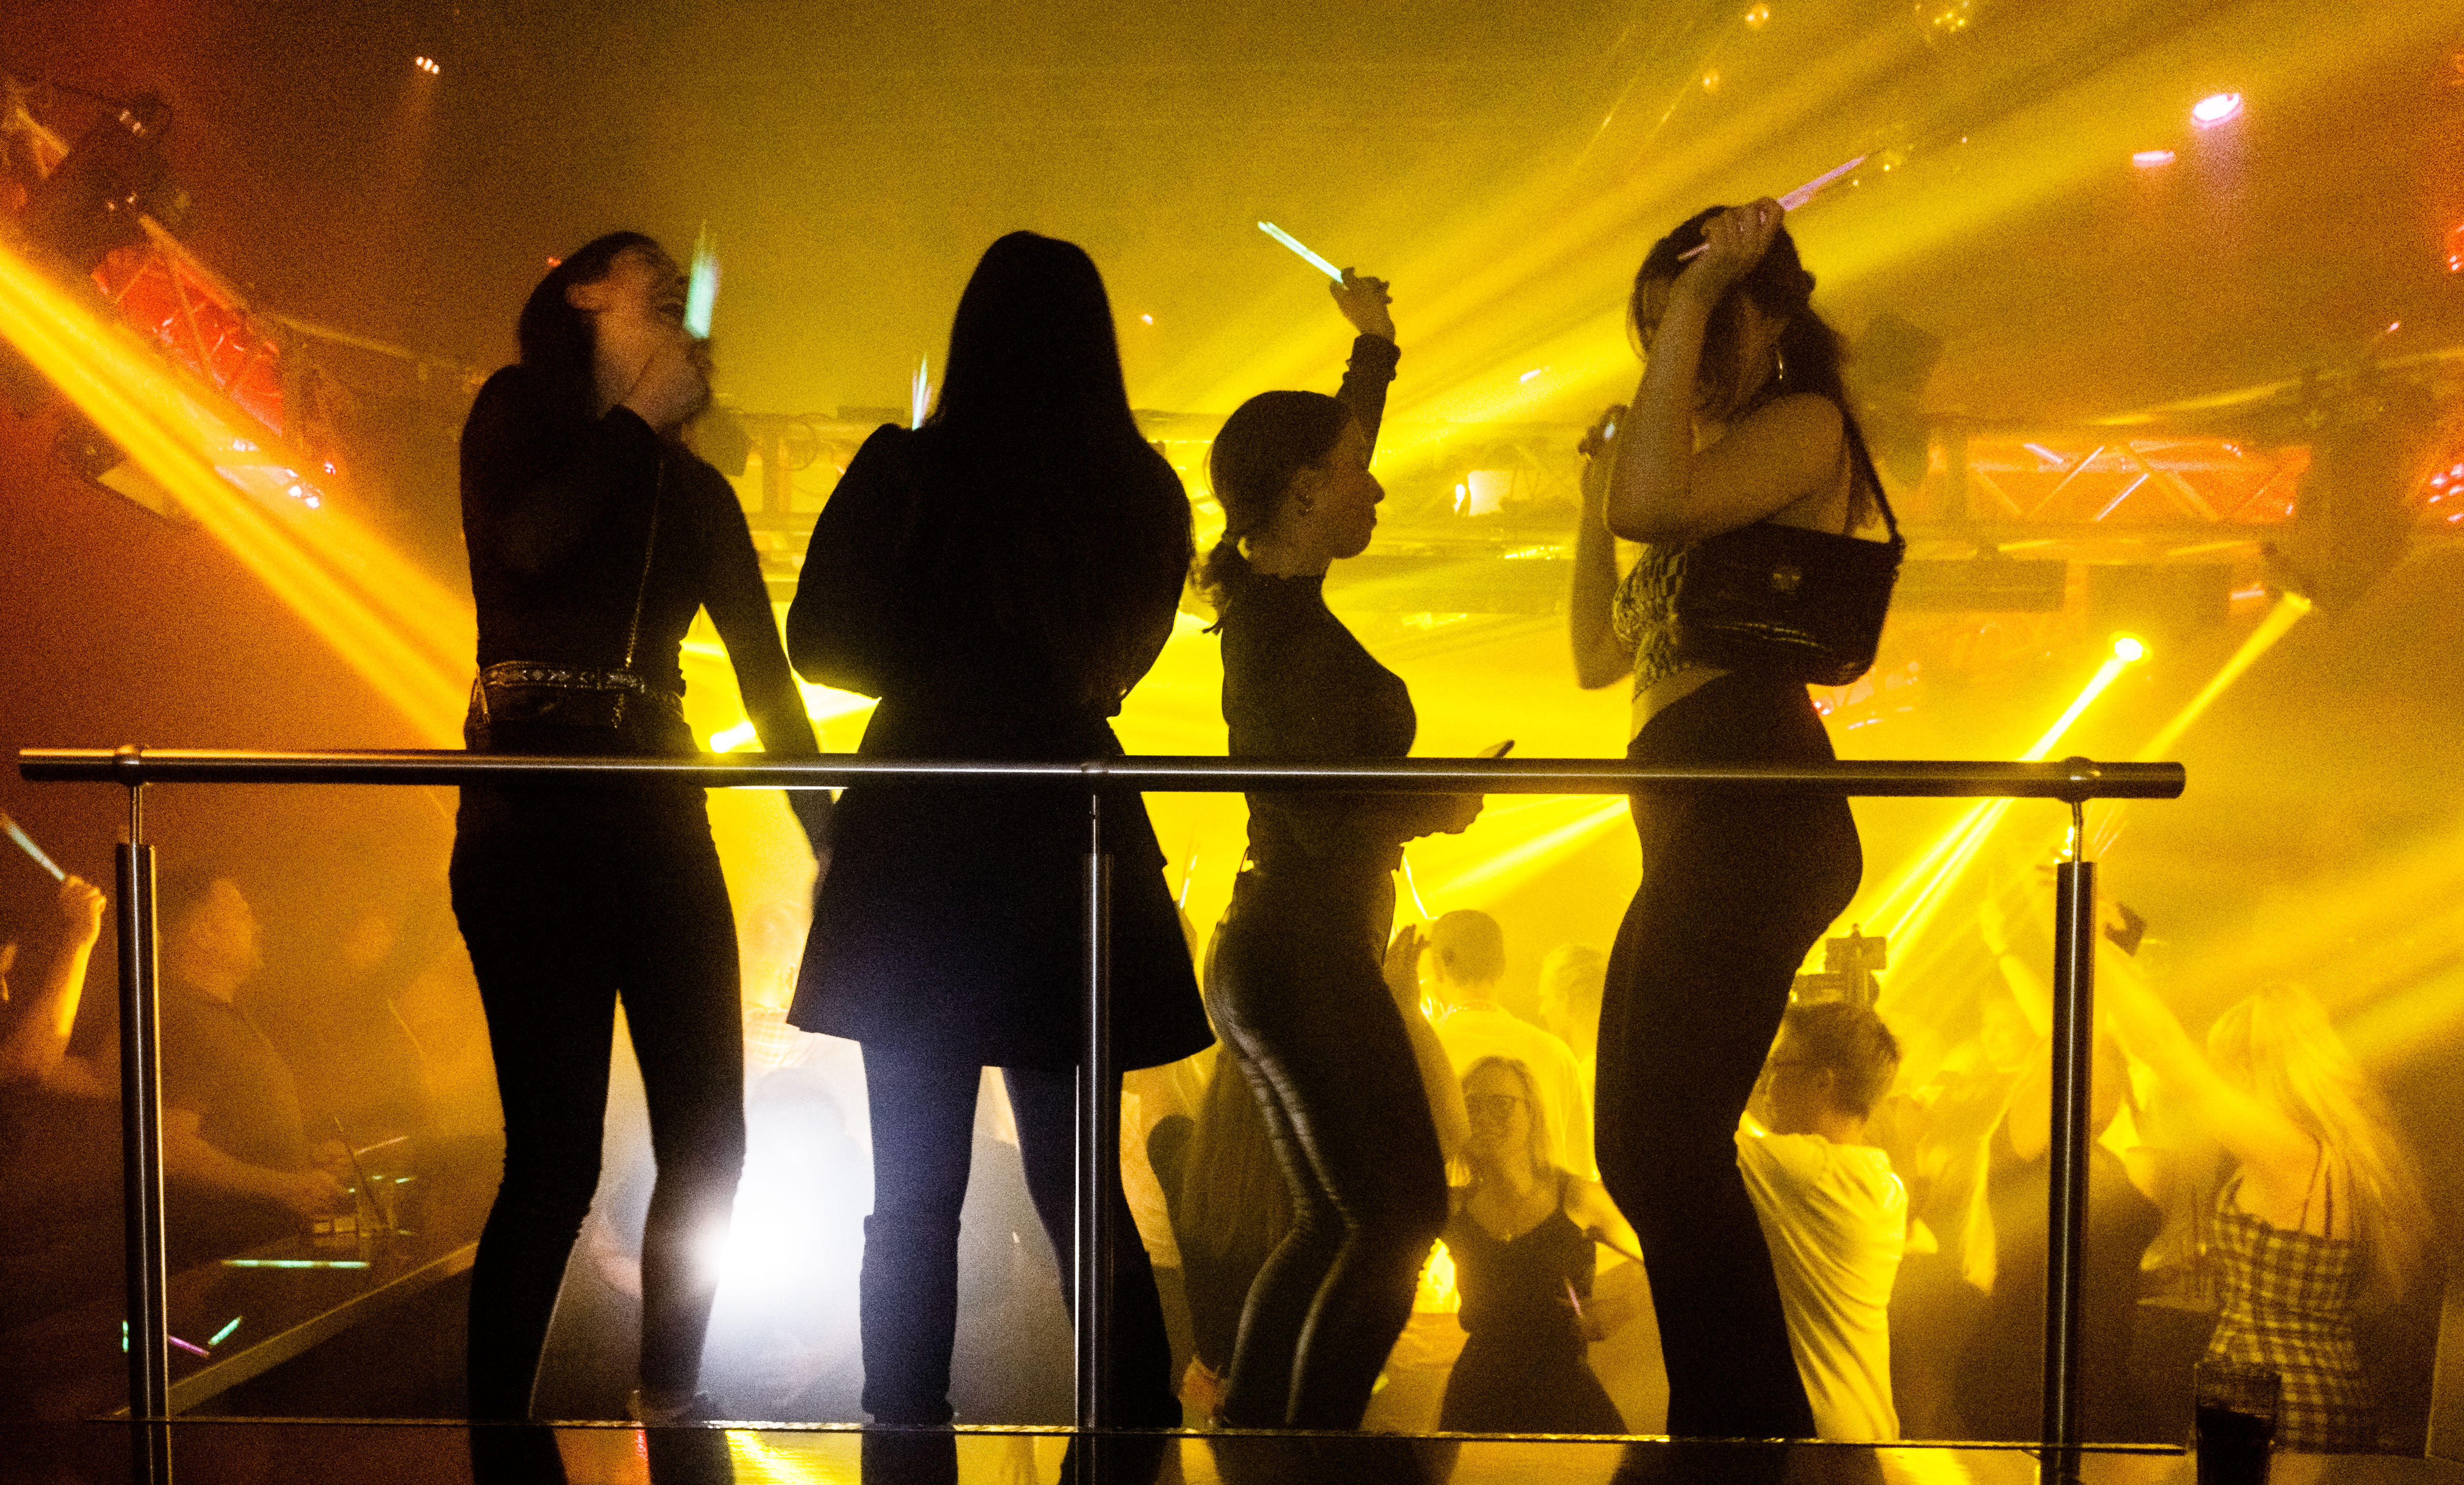 Four people dancing in a club and waving glow sticks.